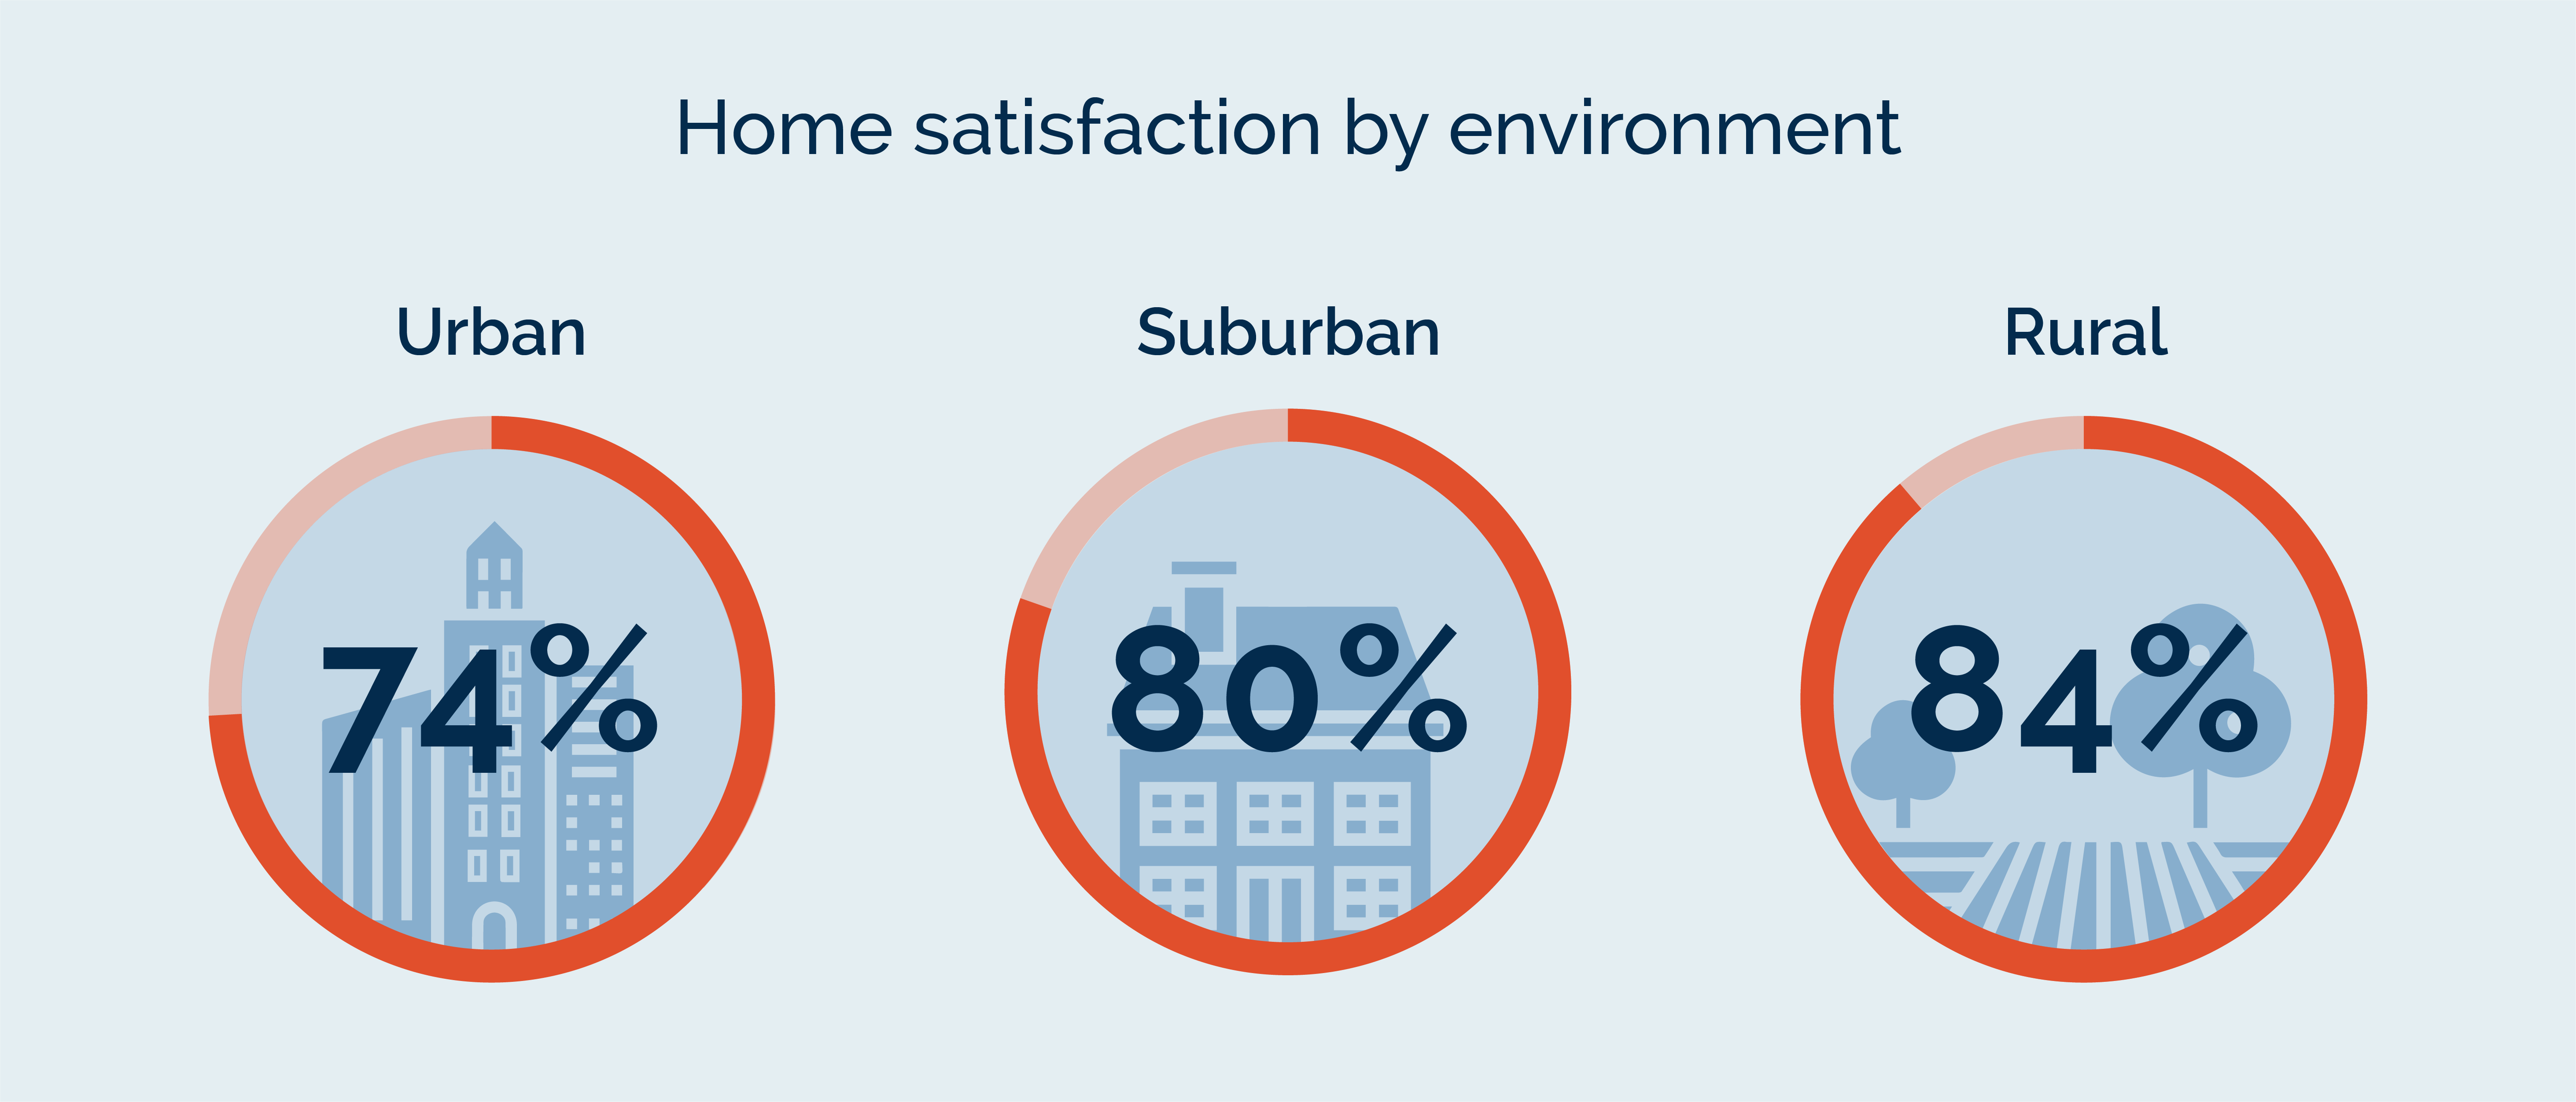 Home satisfaction by environment